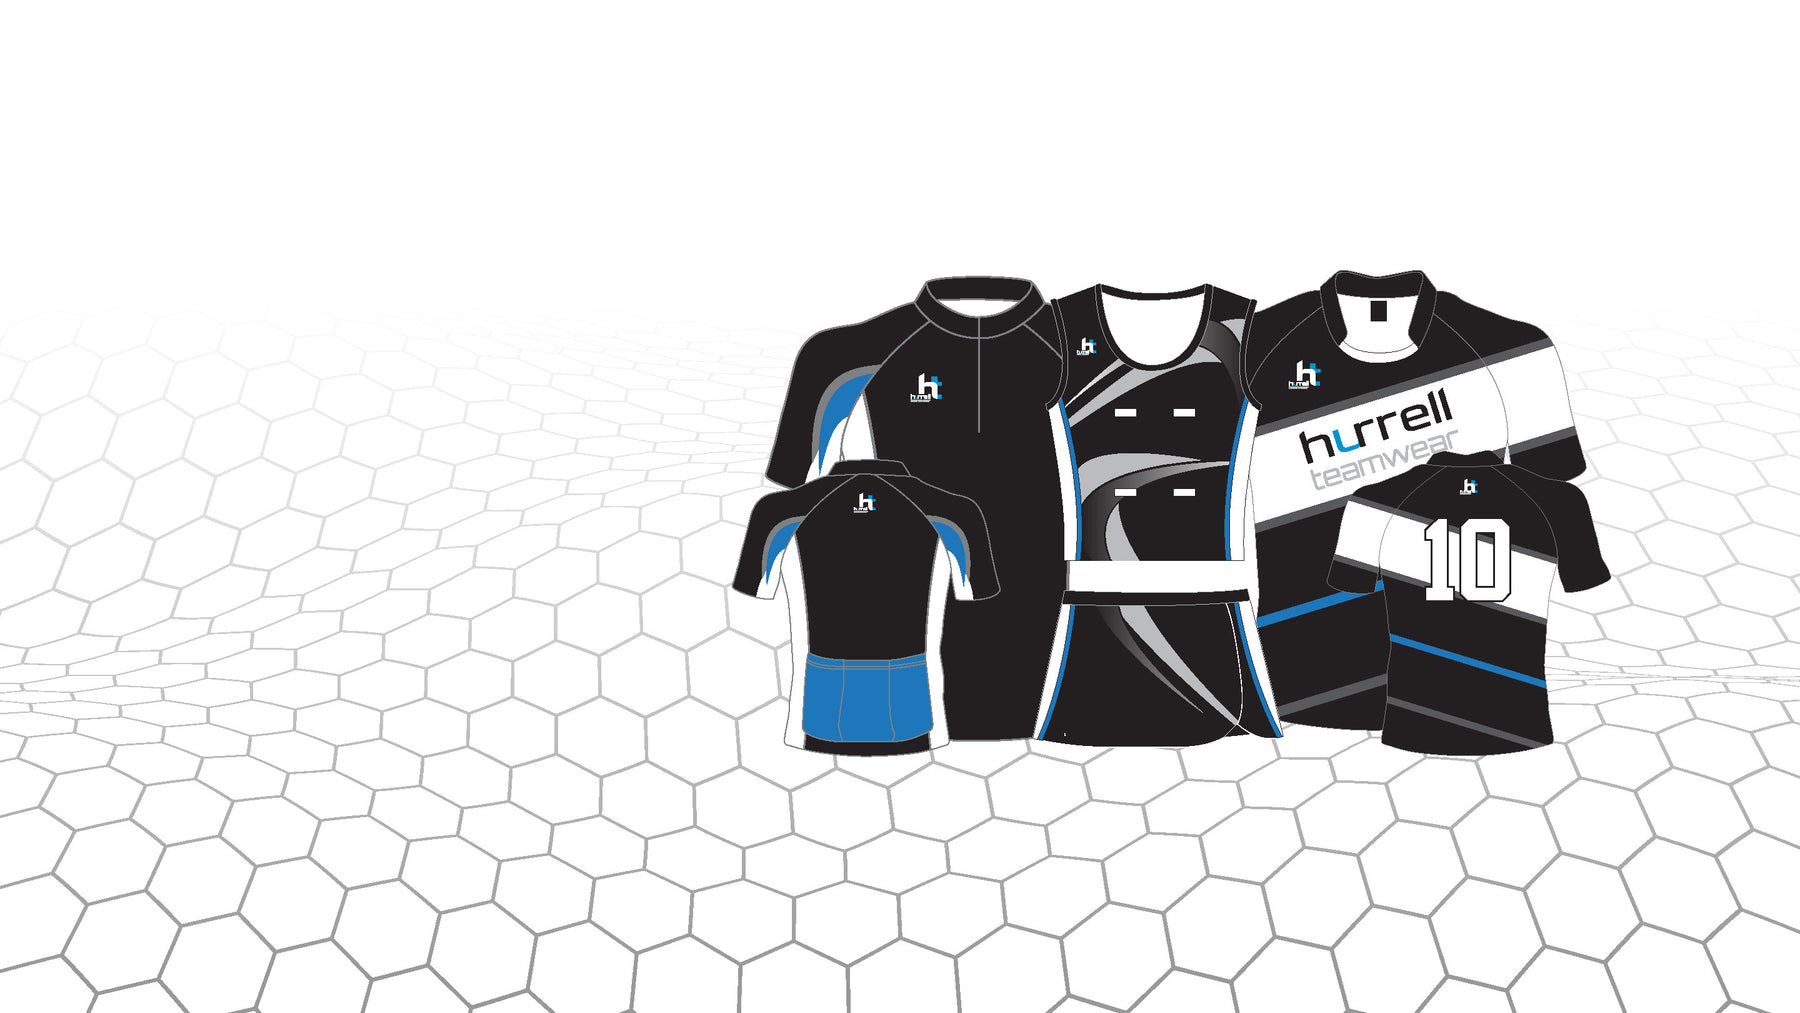 Hurrell Teamwear Custom Sublimated Teamwear, Rugby, Netball, Cycling